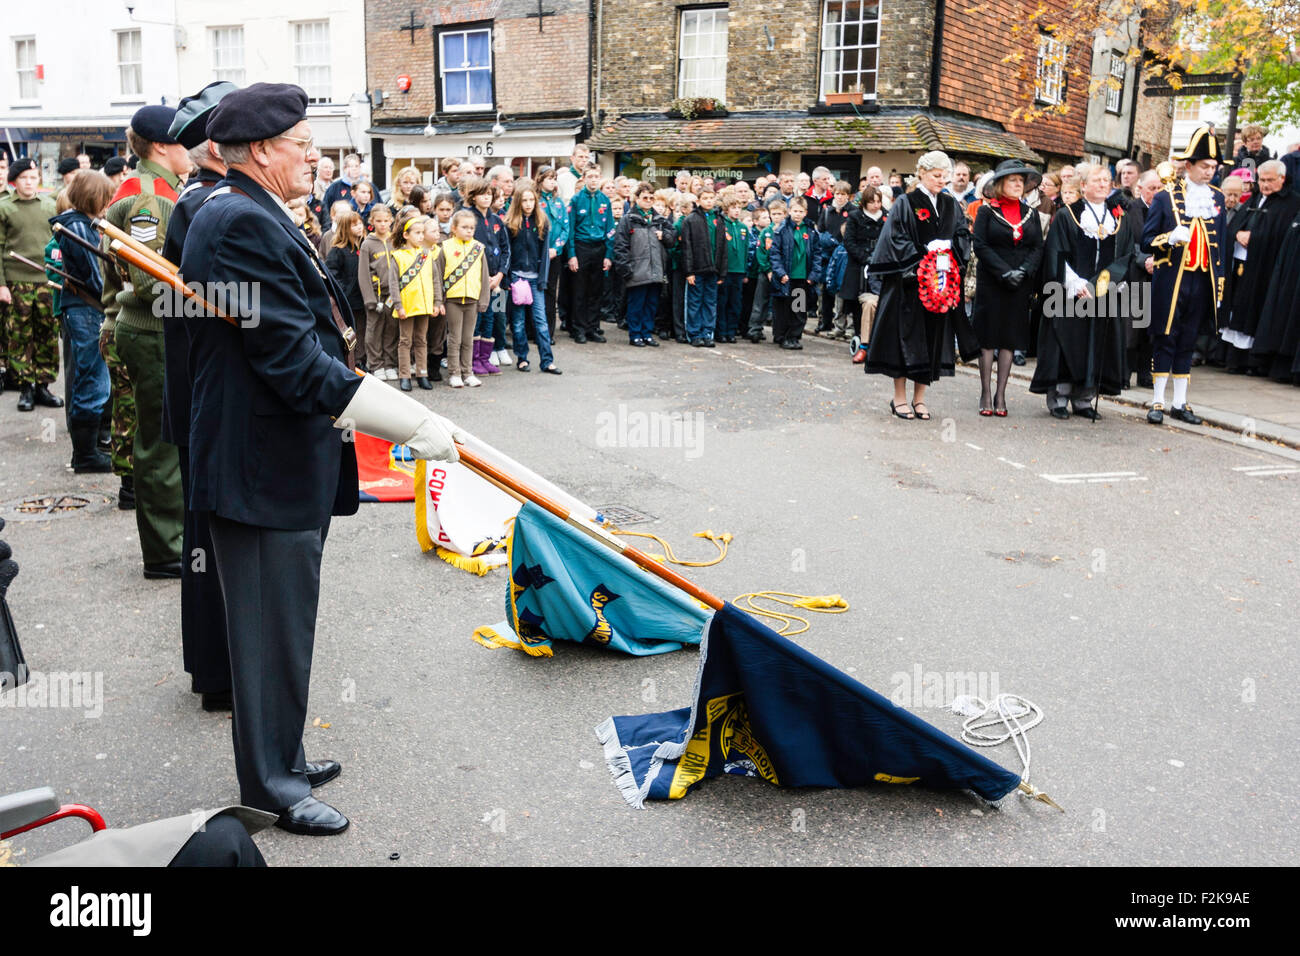 England, Sandwich. Remembrance Sunday. Ex-servicemen standing lowering regimental flags during silence in town square - Stock Image